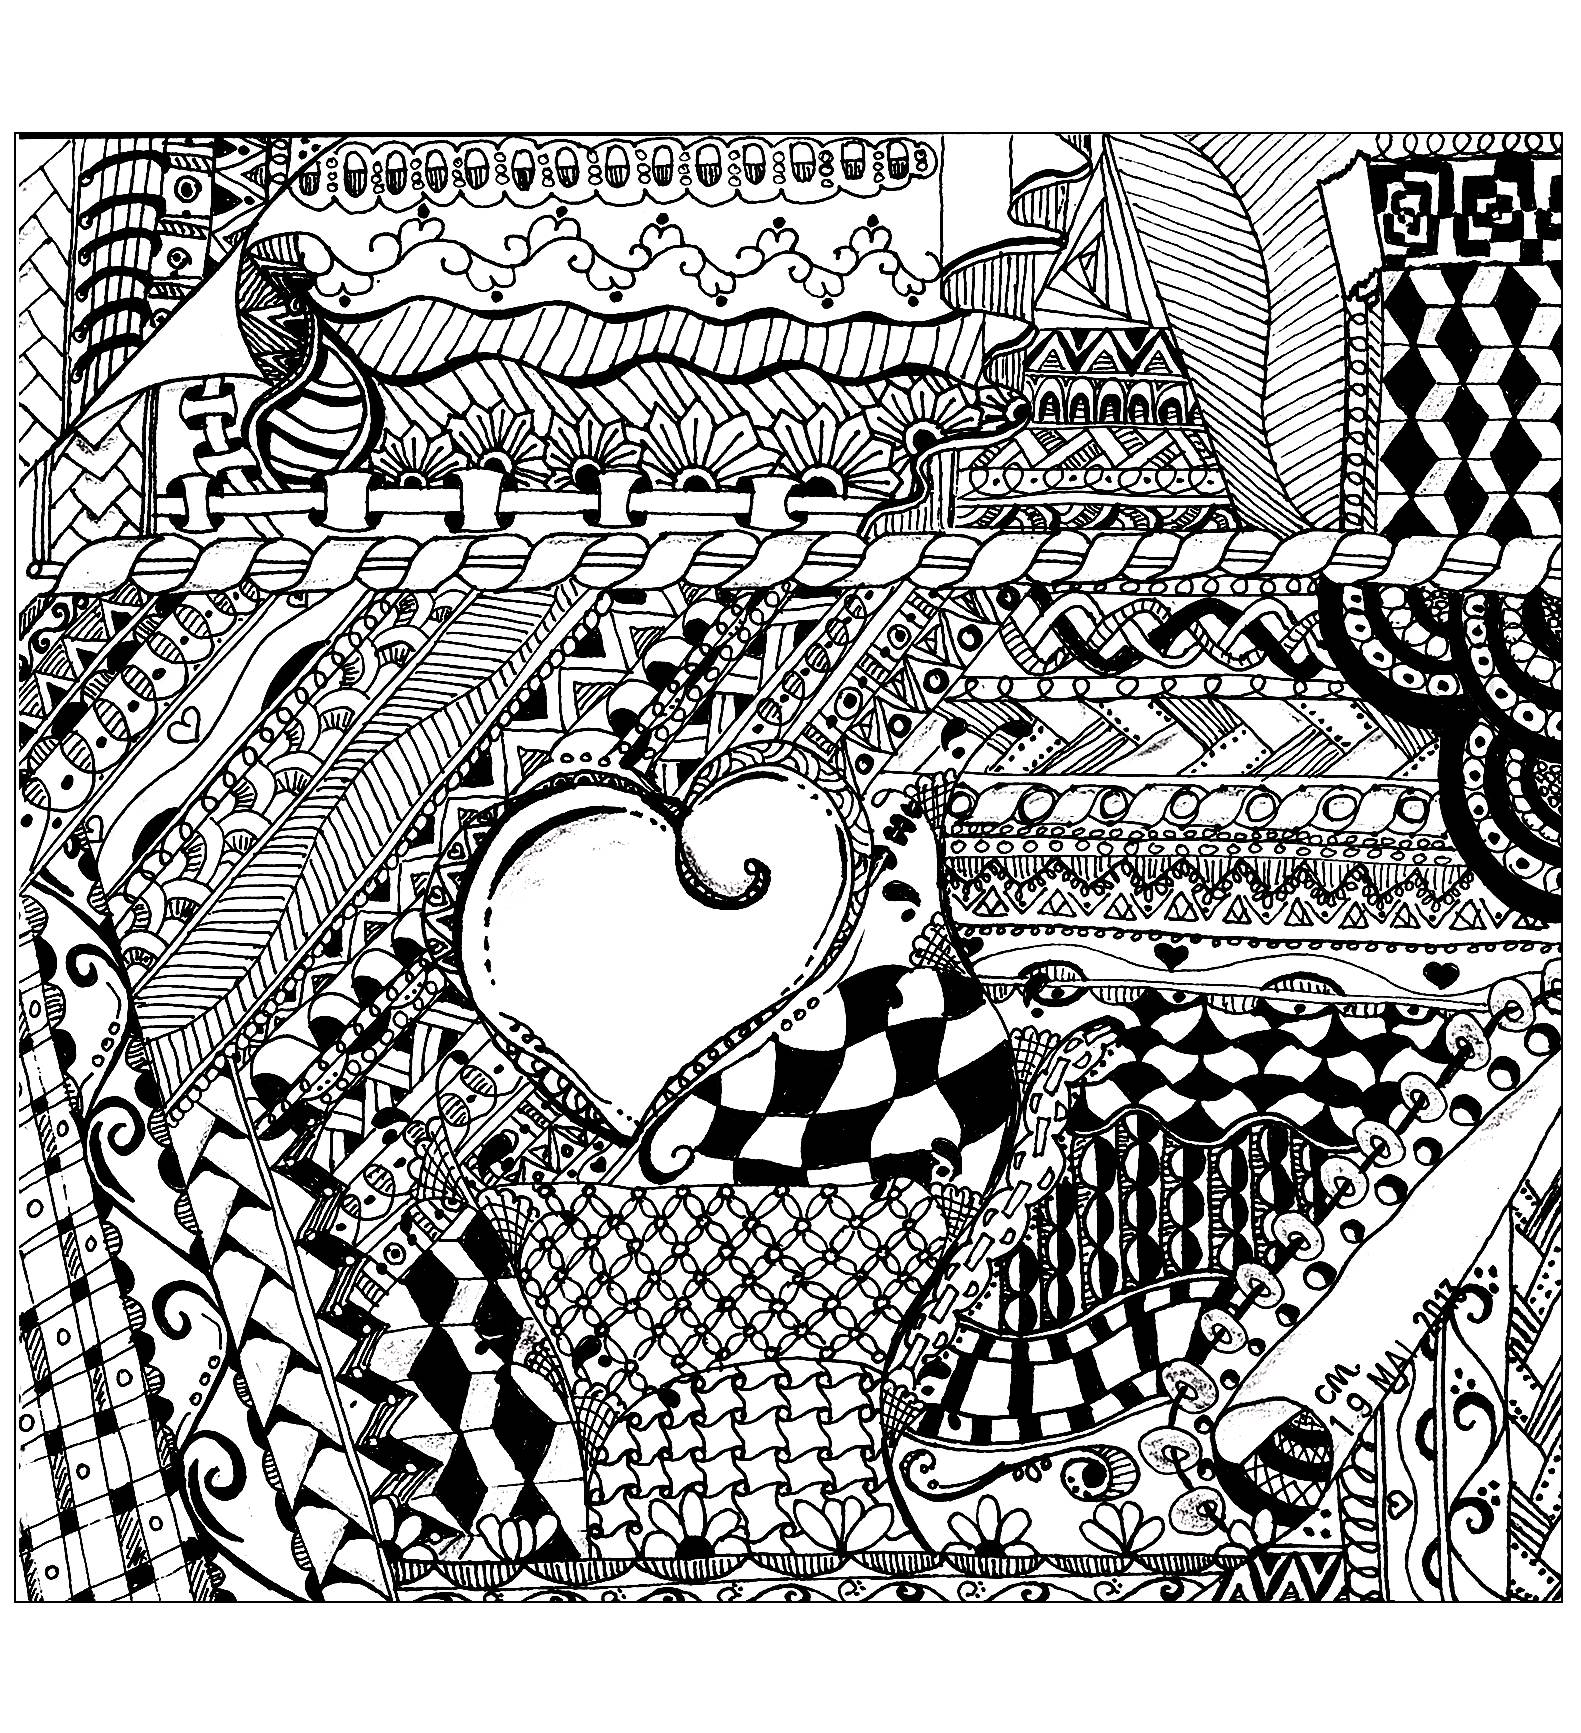 Coloring pages for adults zentangle -  Let Go Exclusive Zentangle Coloring Page See The Original Work From The